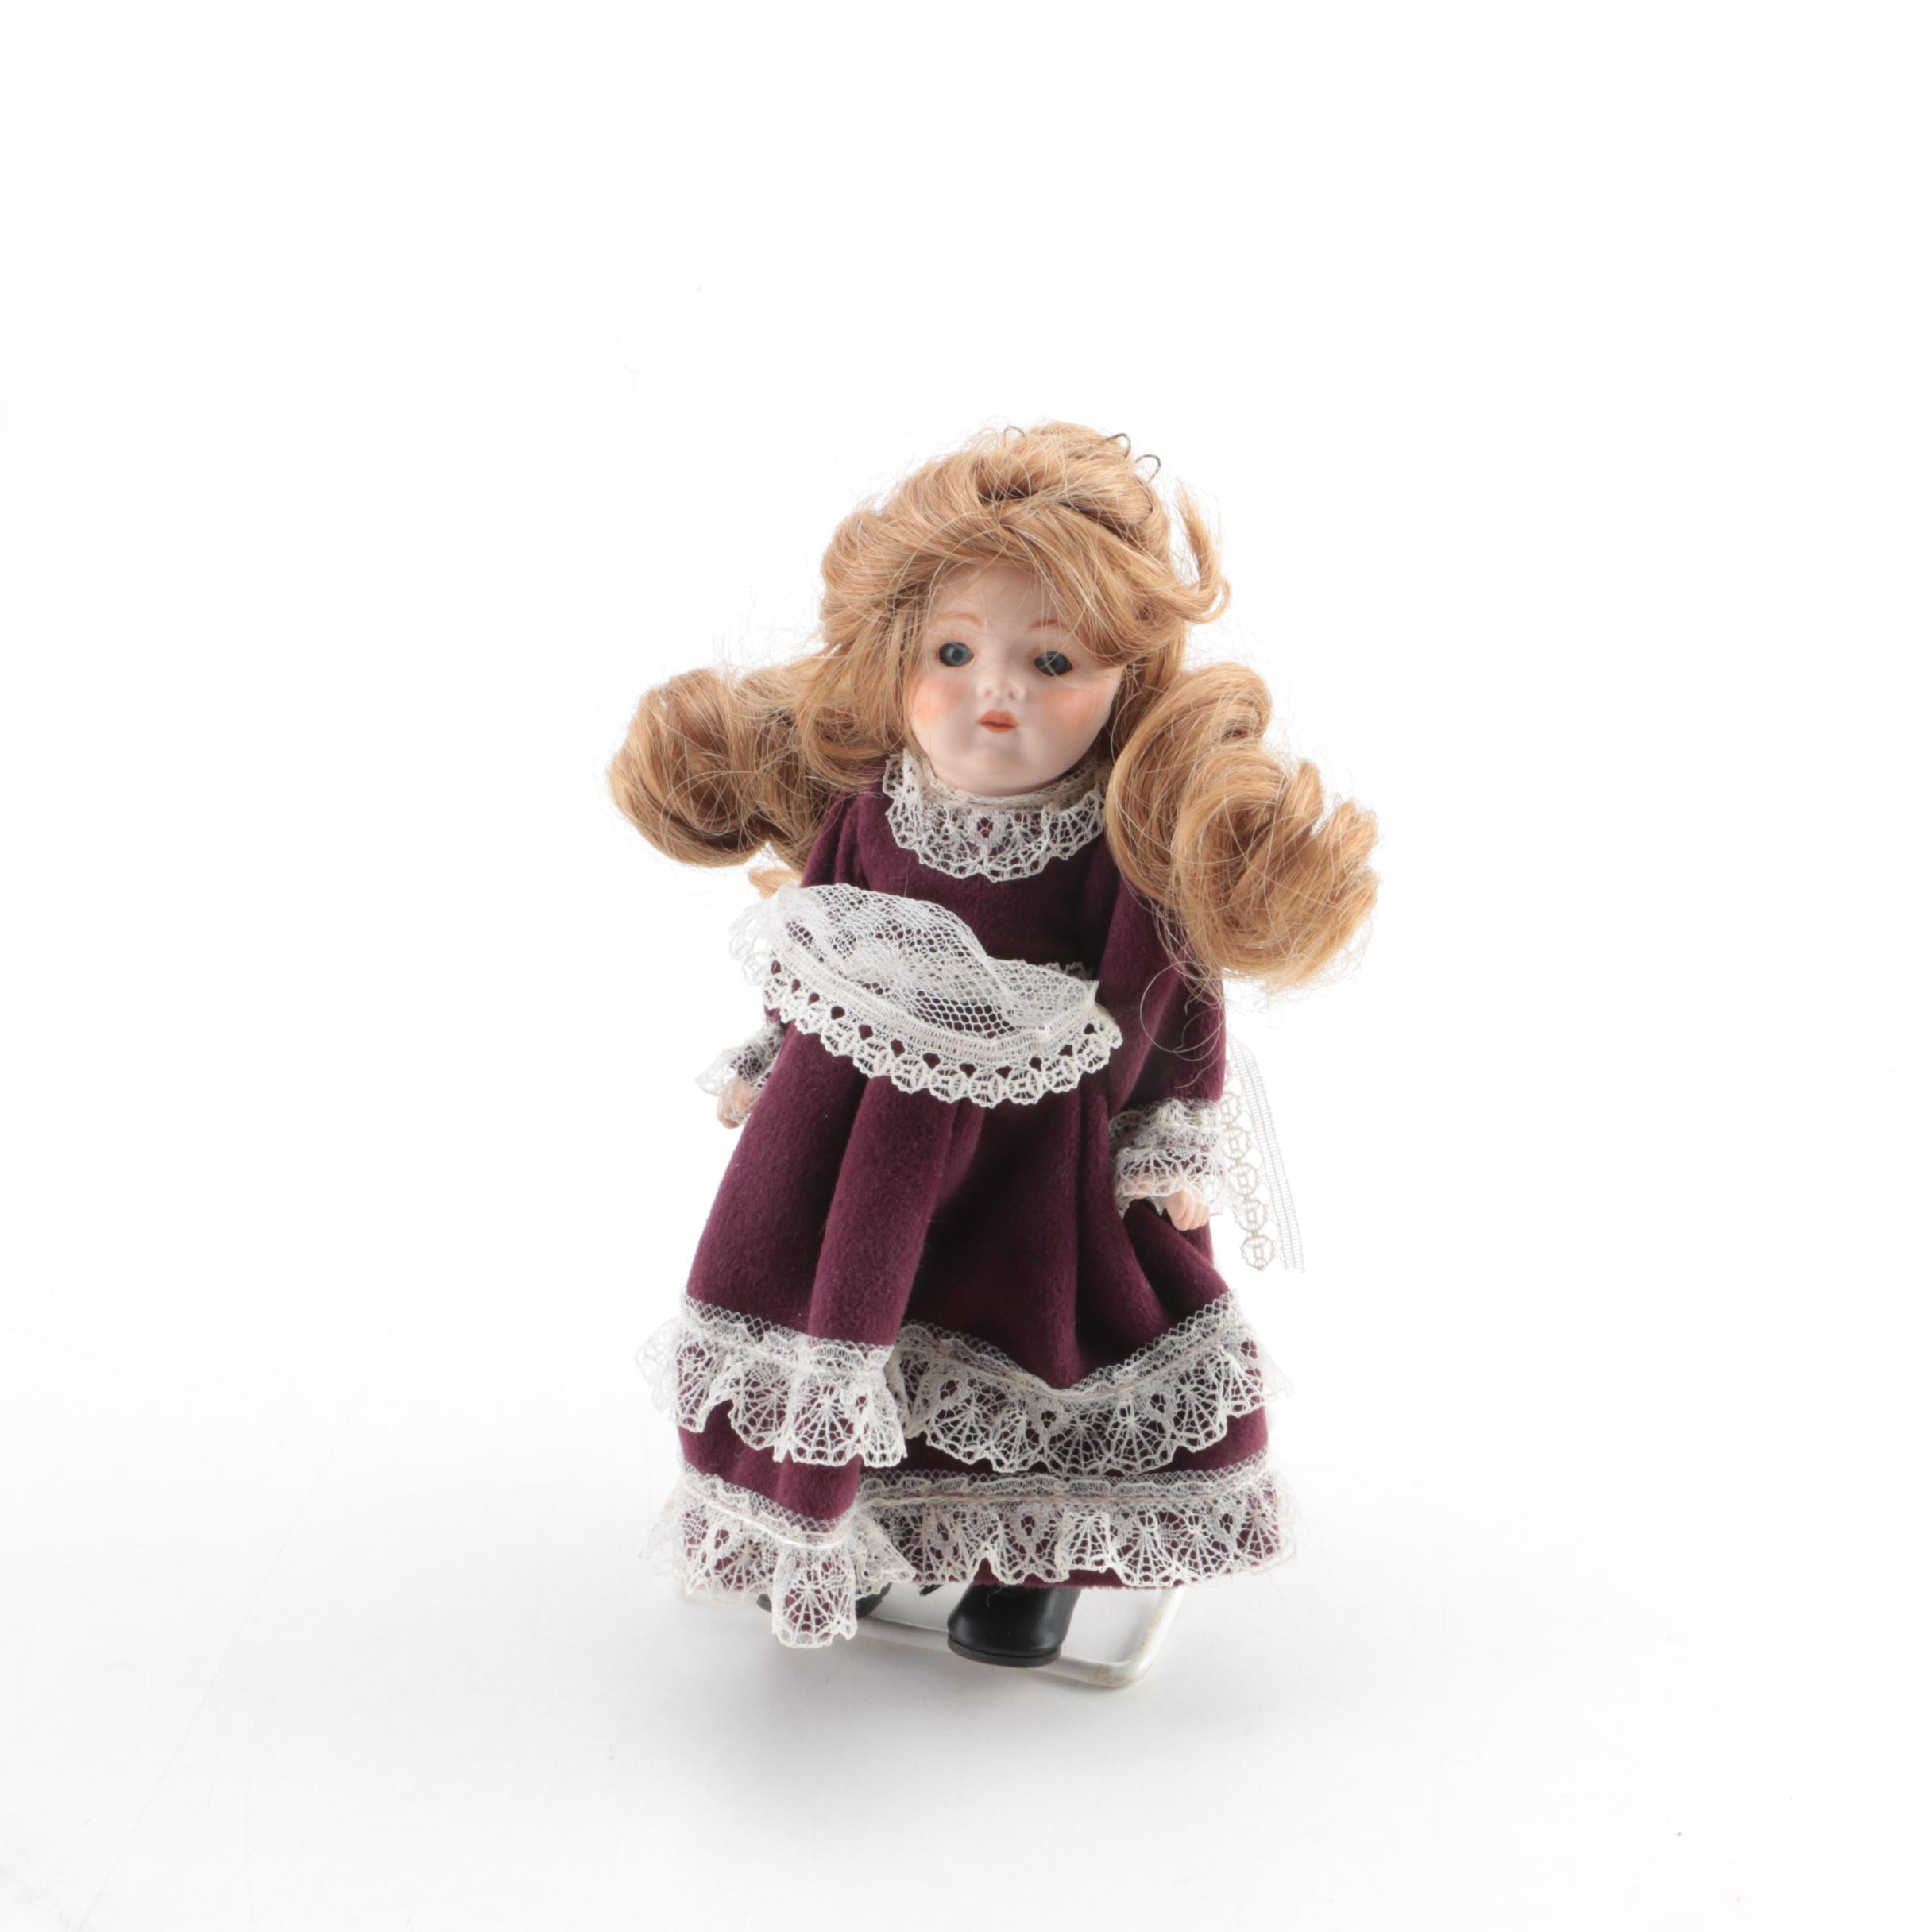 Vintage Hand-Painted Bisque Doll